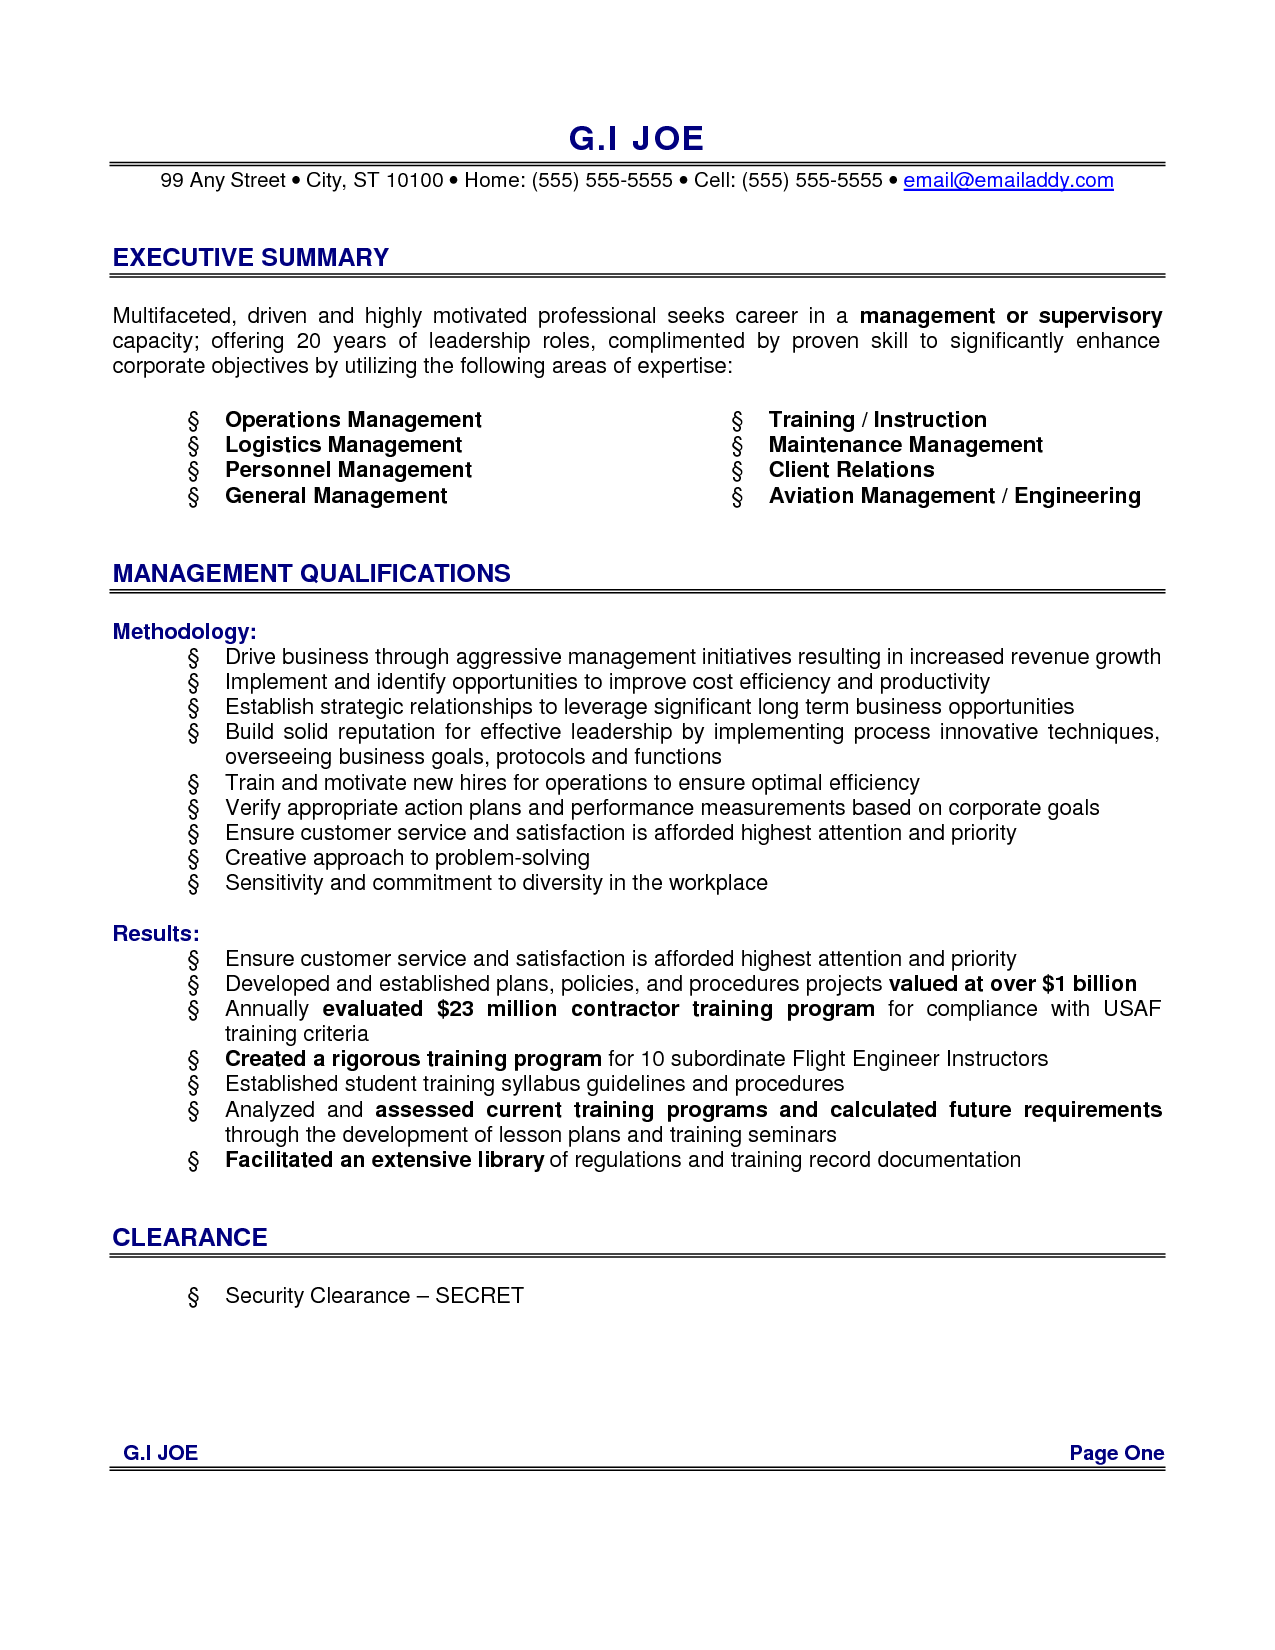 Resume Summary Examples Resumeexamples For Executive Summary With Management